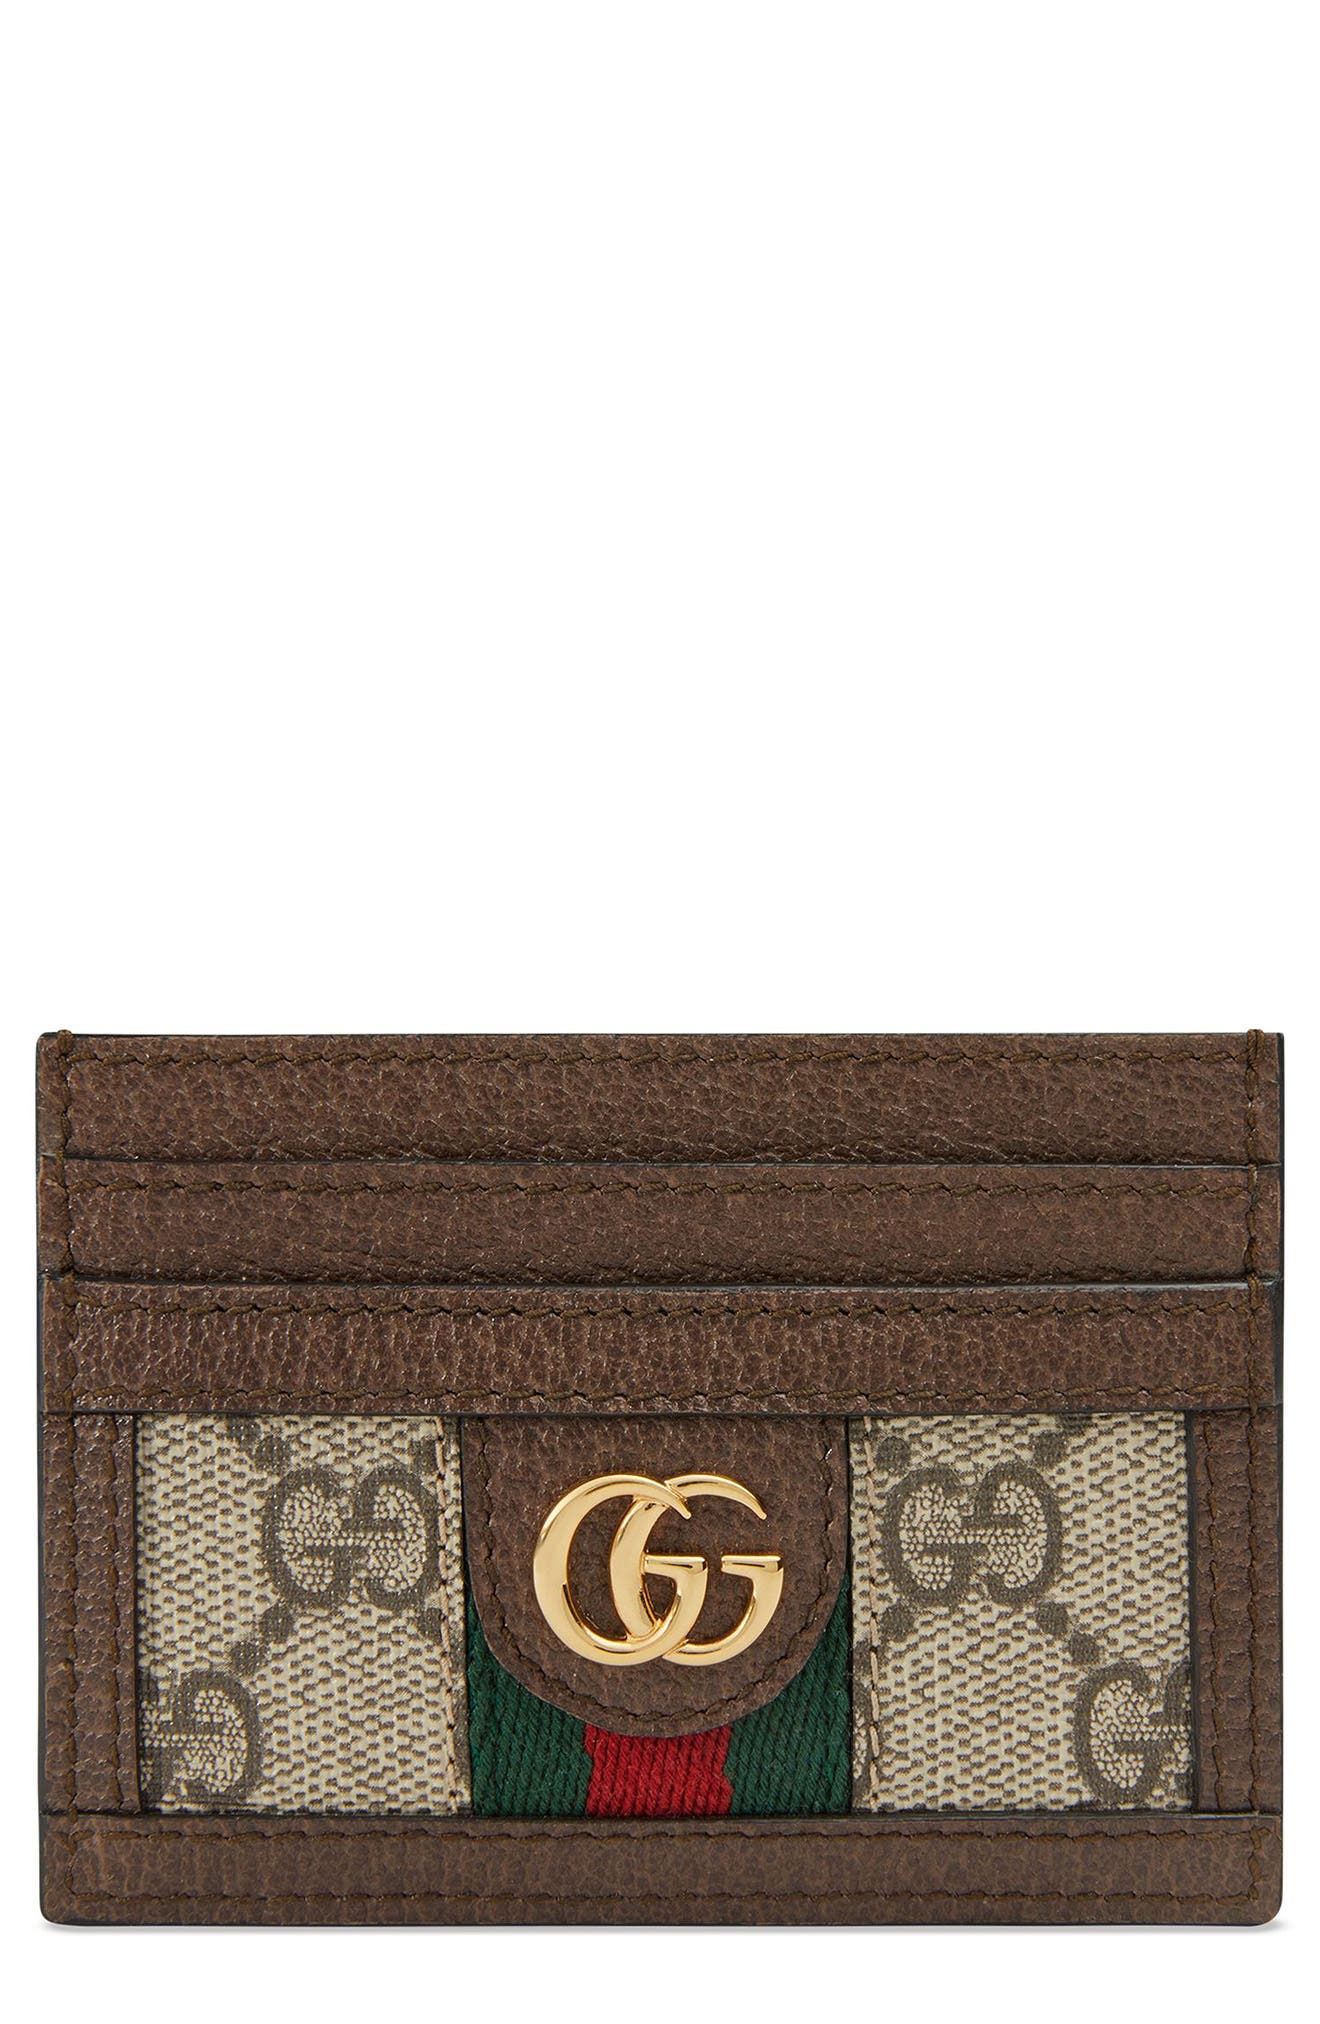 GUCCI, Ophidia GG Supreme Card Case, Main thumbnail 1, color, BEIGE EBONY/ ACERO/ VERT RED